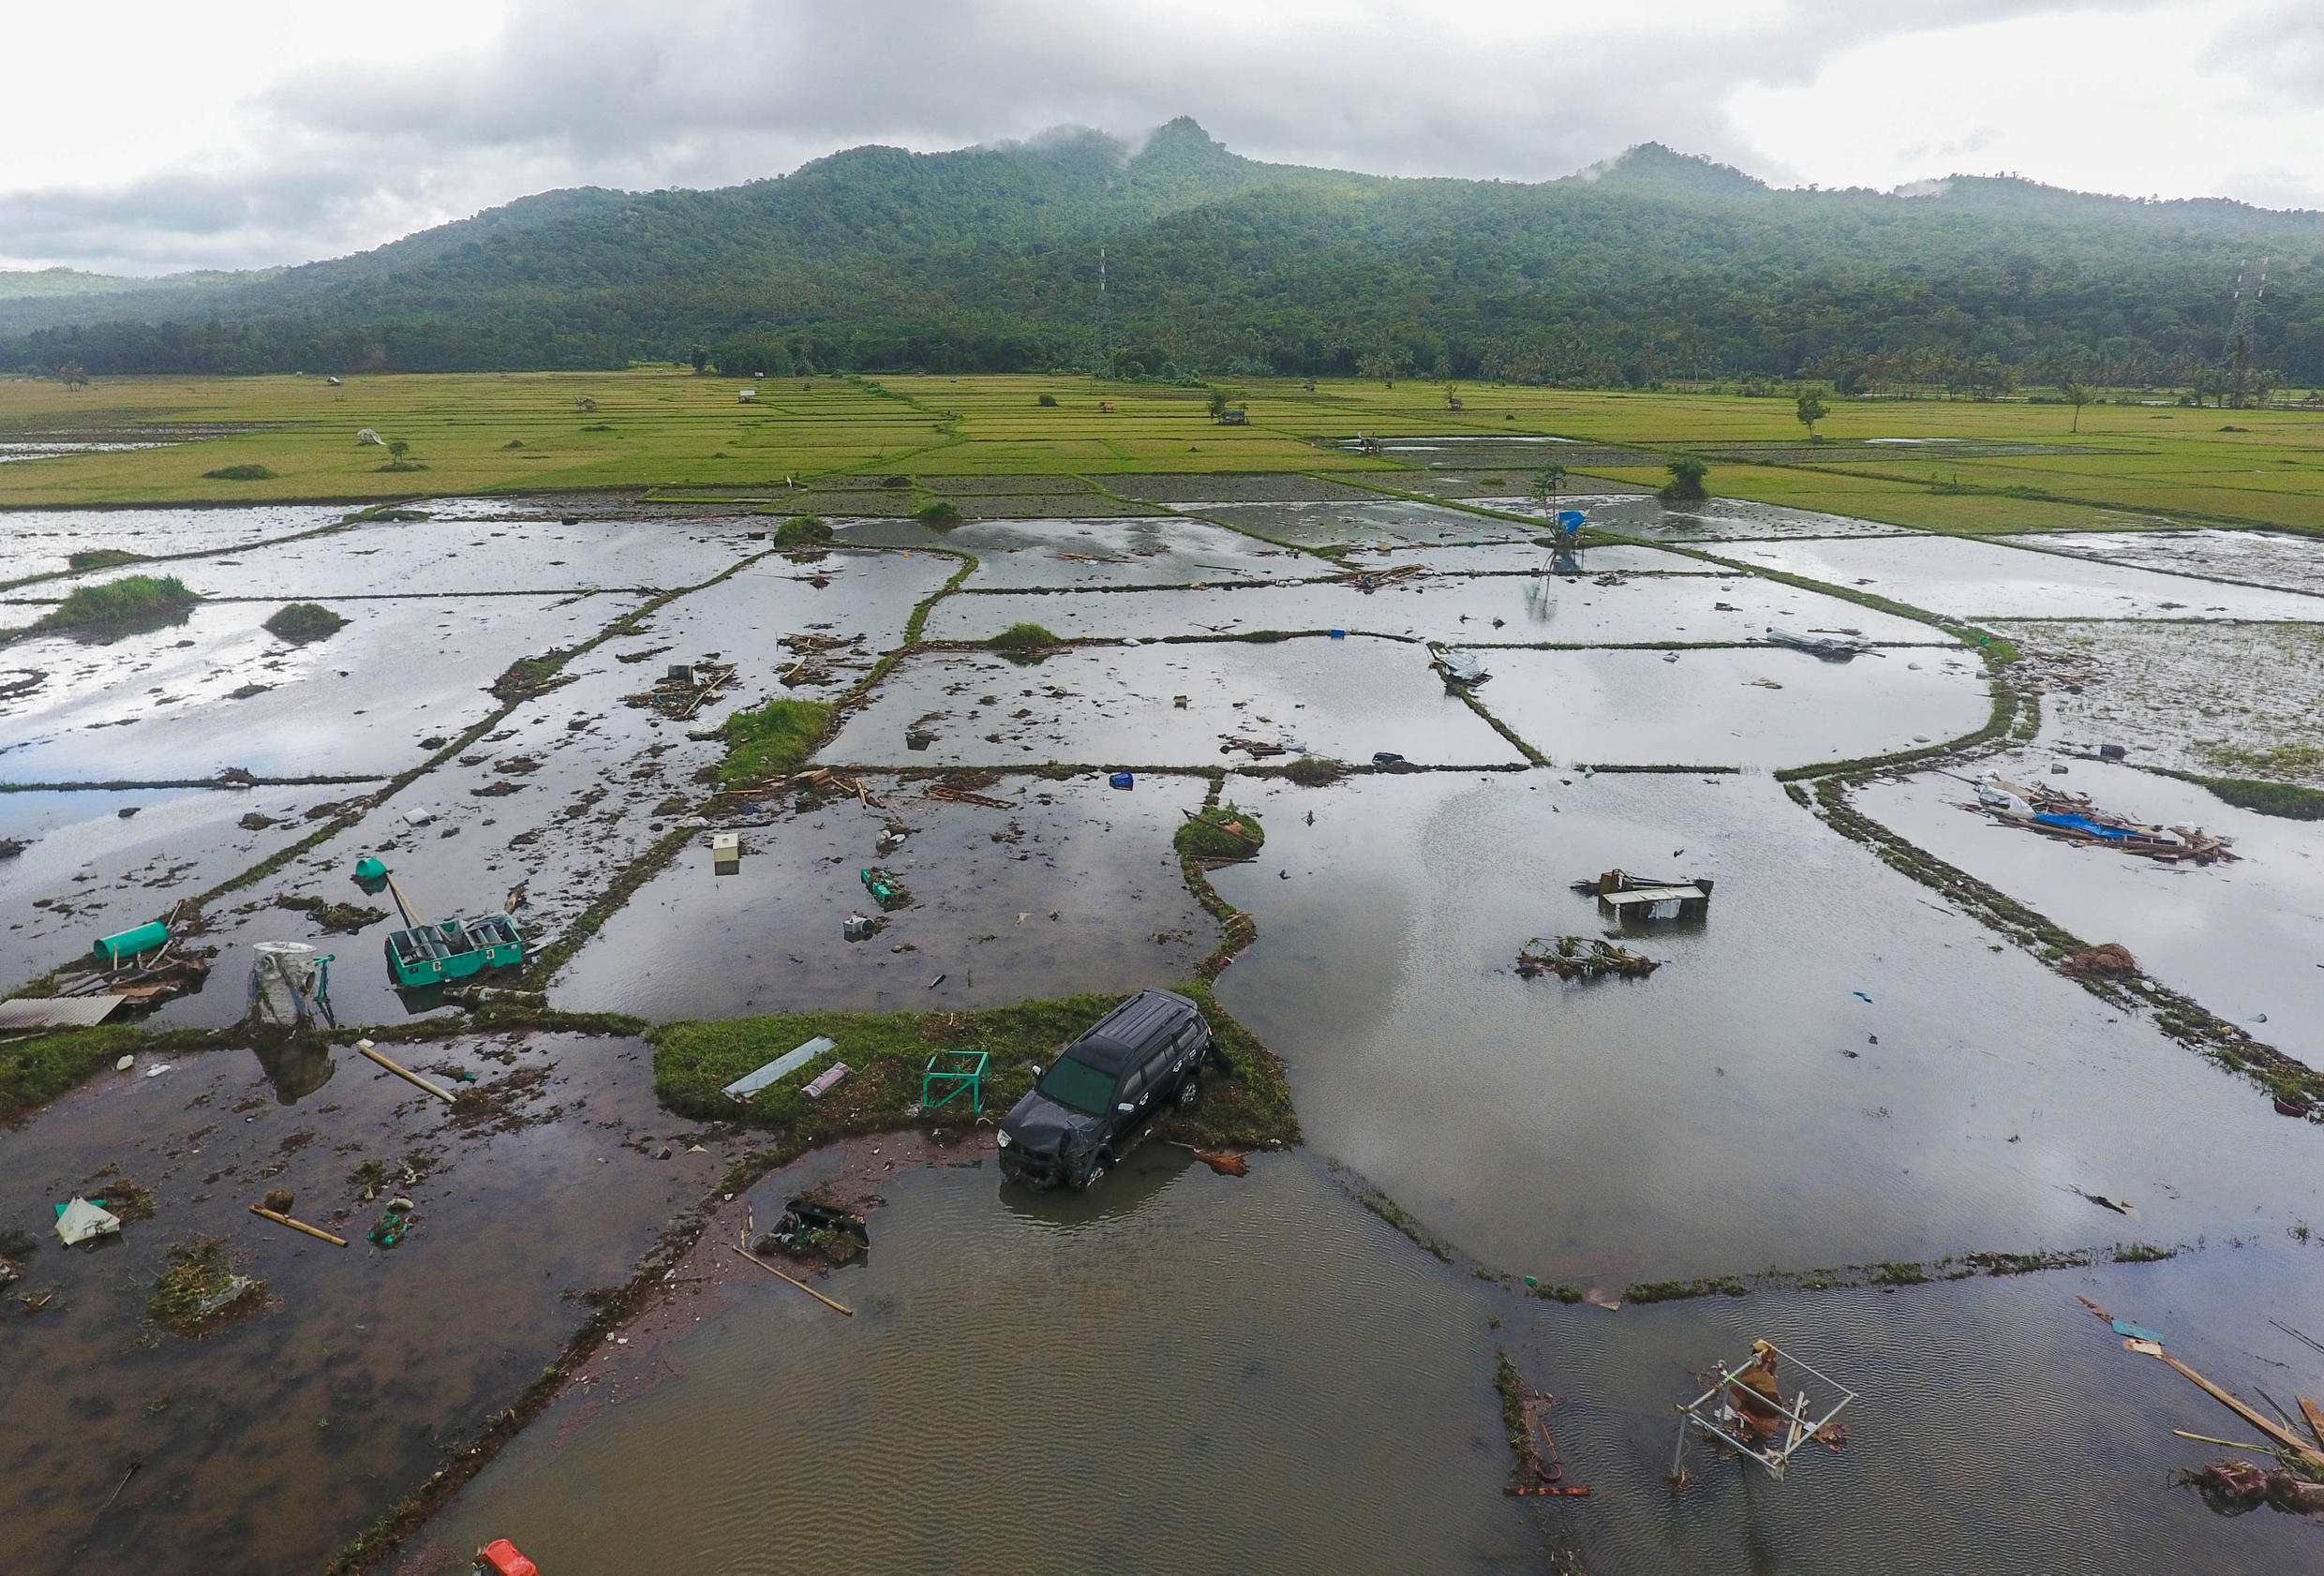 Rescue operations after the December 2018 tsunami in Indonesia have been marred by torrential floods and difficult accessibility  to remote areas